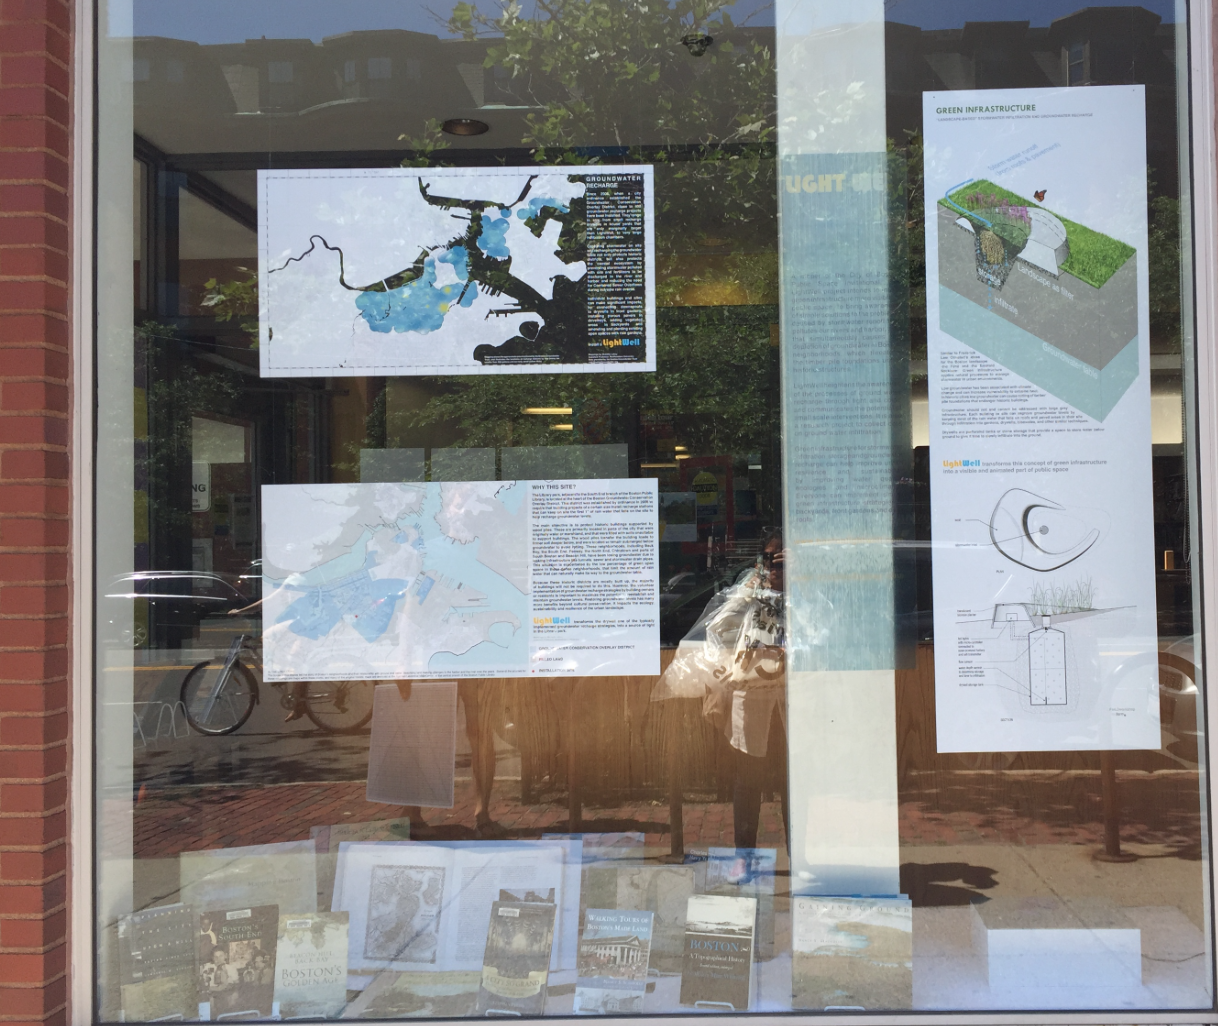 The latest SE library window display, featuring an explanation of the artistic and groundwater components of Library Park's LightWells